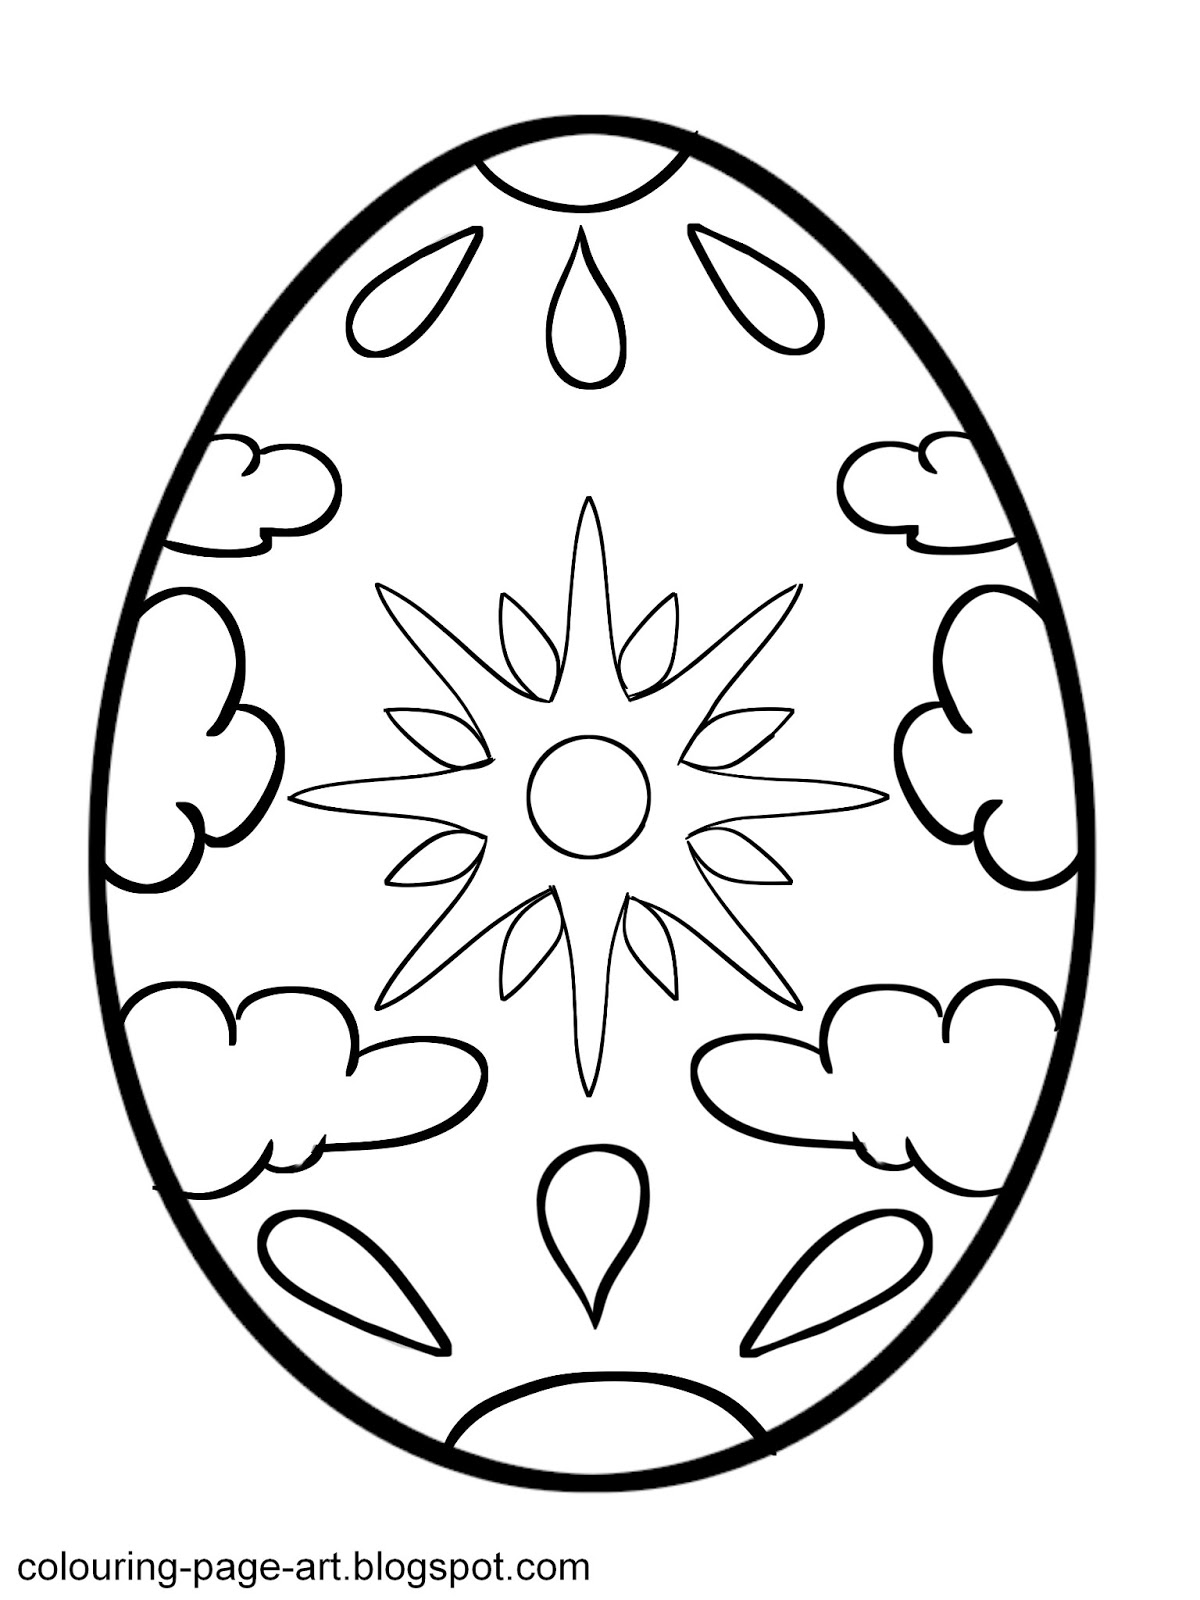 flower power easter egg colouring page colouring page art